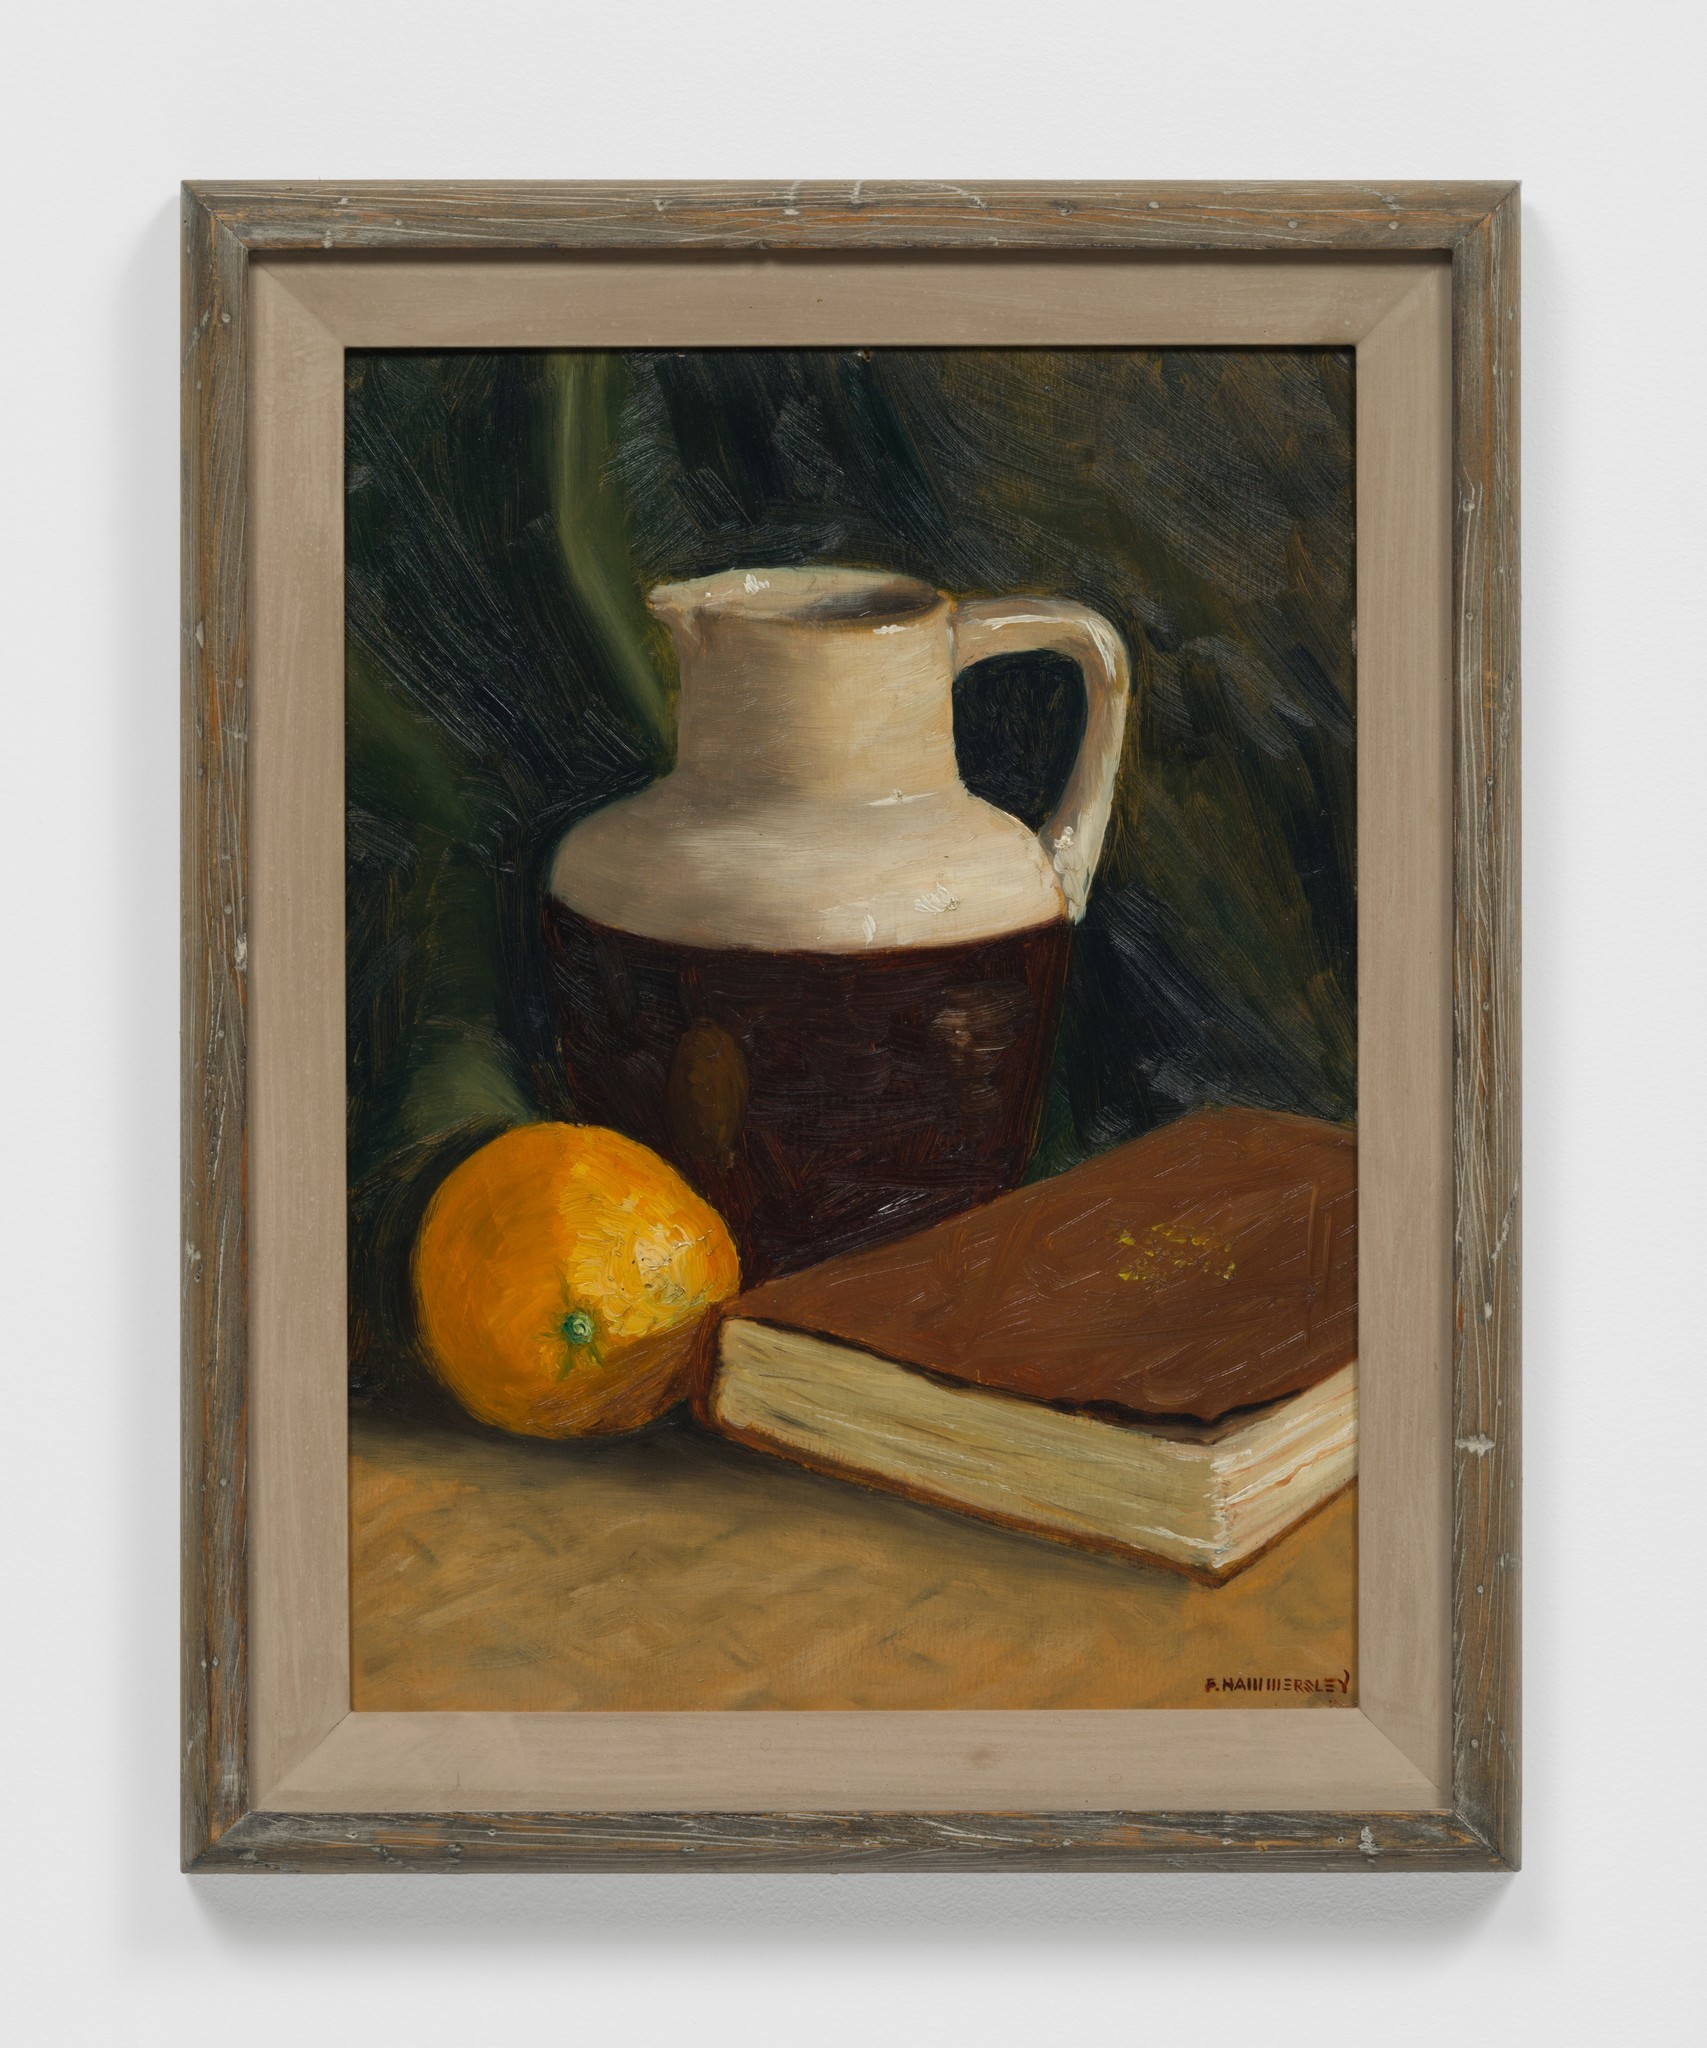 """First Still Life (Ft. Hall, Idaho),"" 1937, oil on upson board in artist-made frame, 19.5 inches by 15.5 inches"